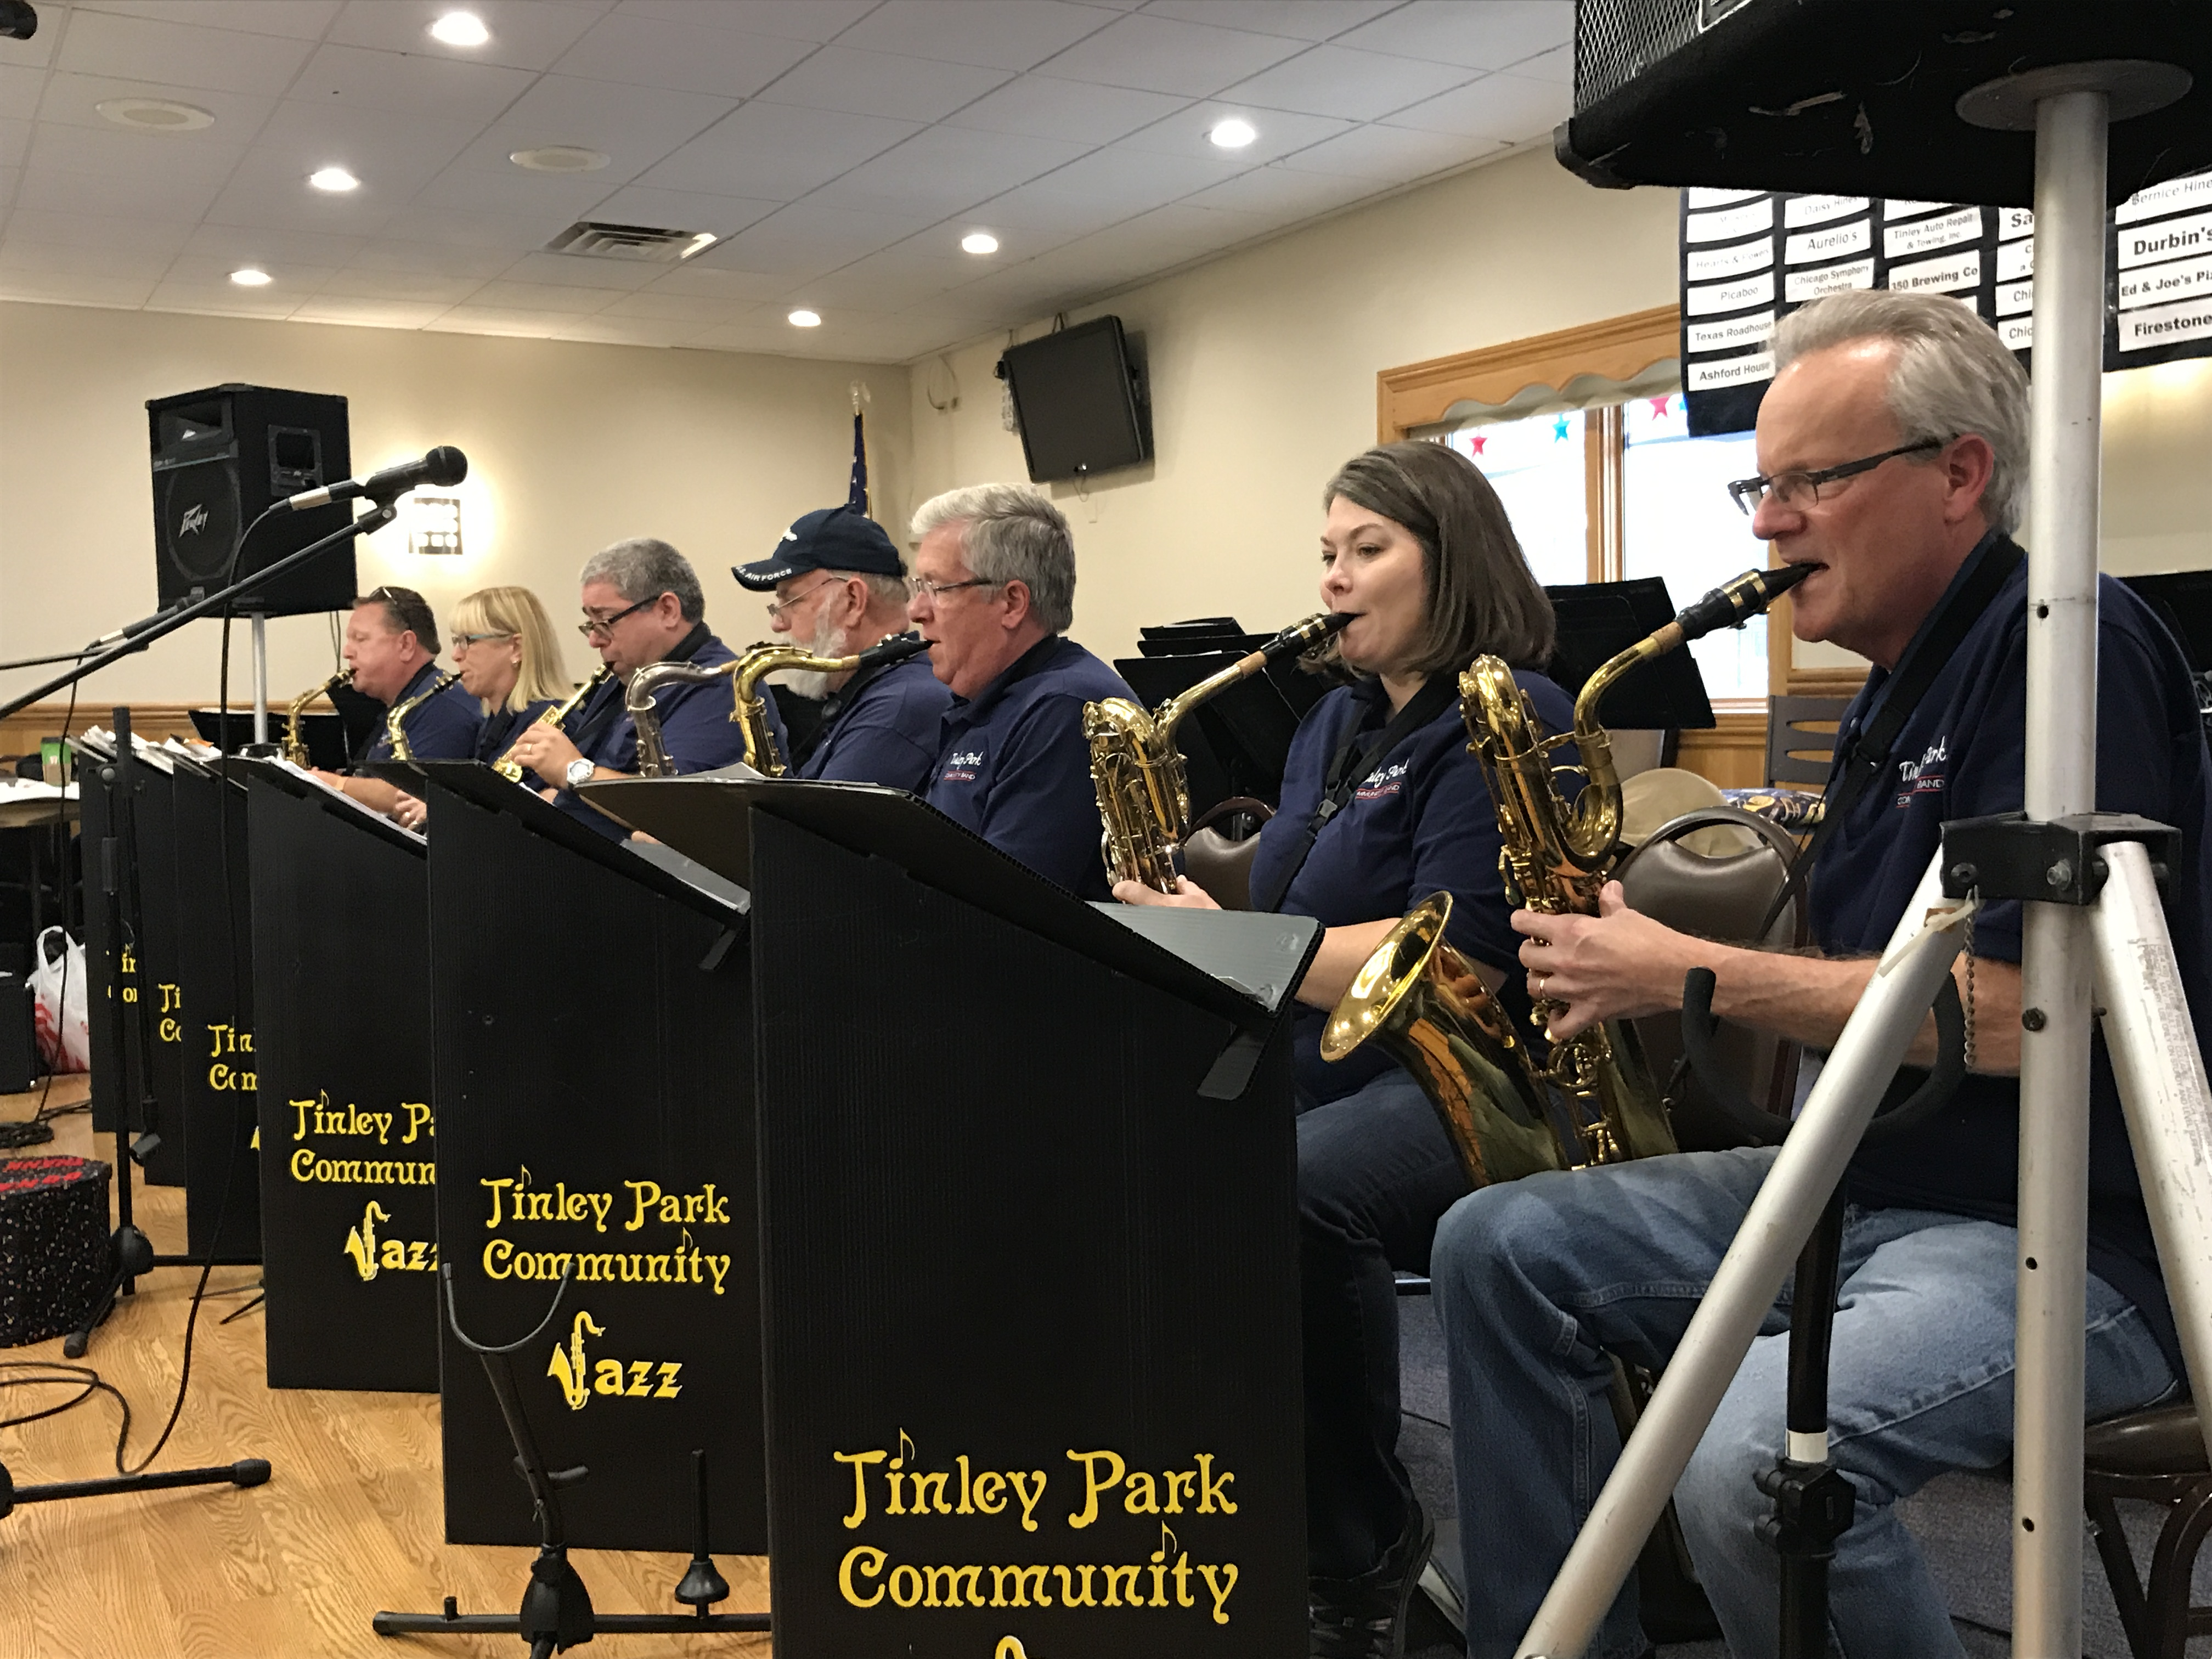 Tinley Park Community Band